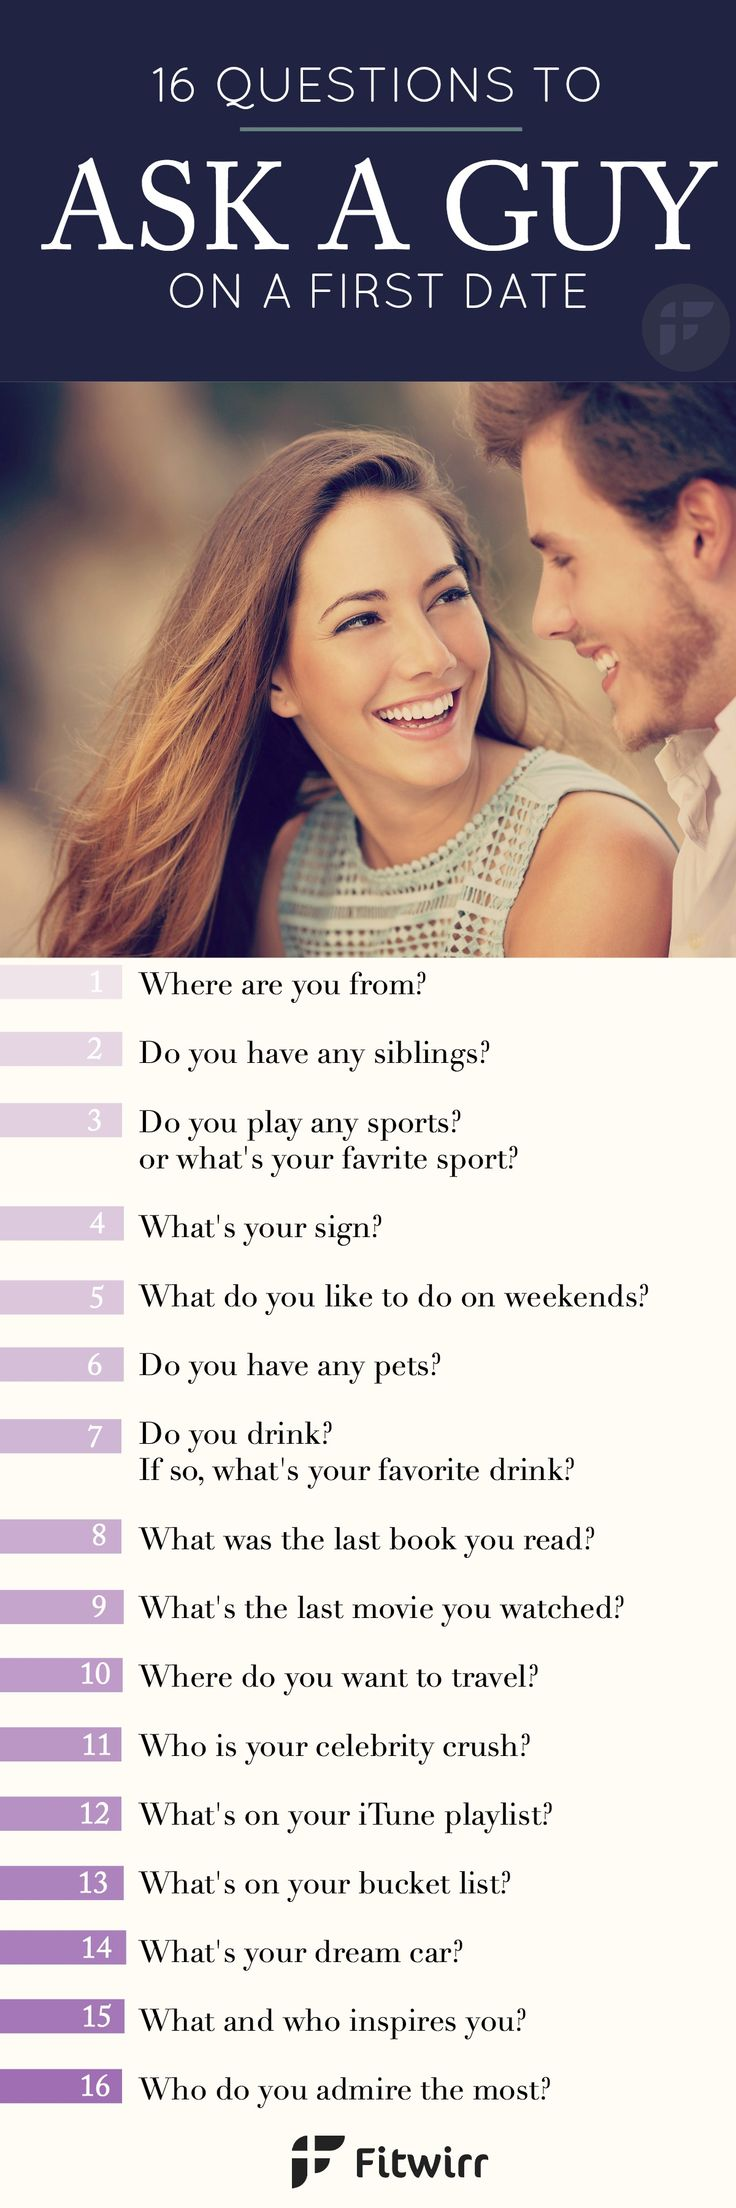 21 Revealing Questions to Ask a Guy